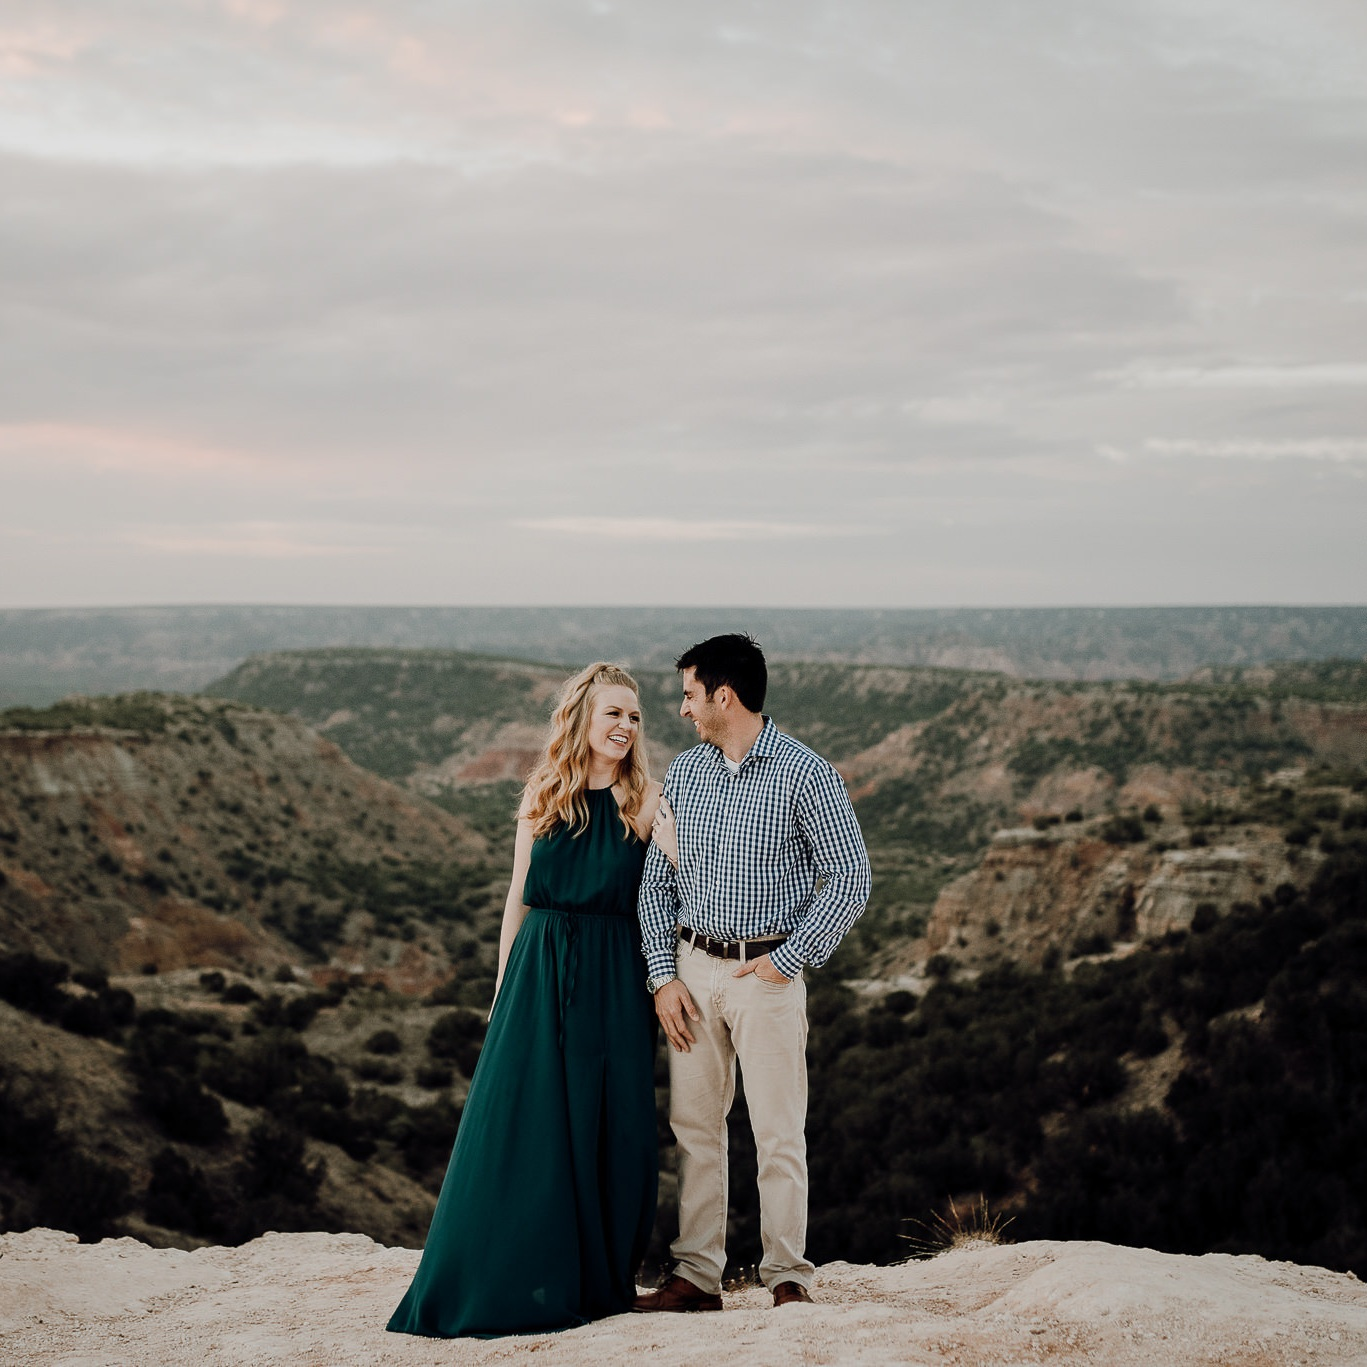 Amarillo+Sunrise+Engagement+Session+Cliffs+-+Palo+Duro+Canyon+State+Park-+Houston+Wedding+Photographer+-Kristen+Giles+Photography-1.jpg